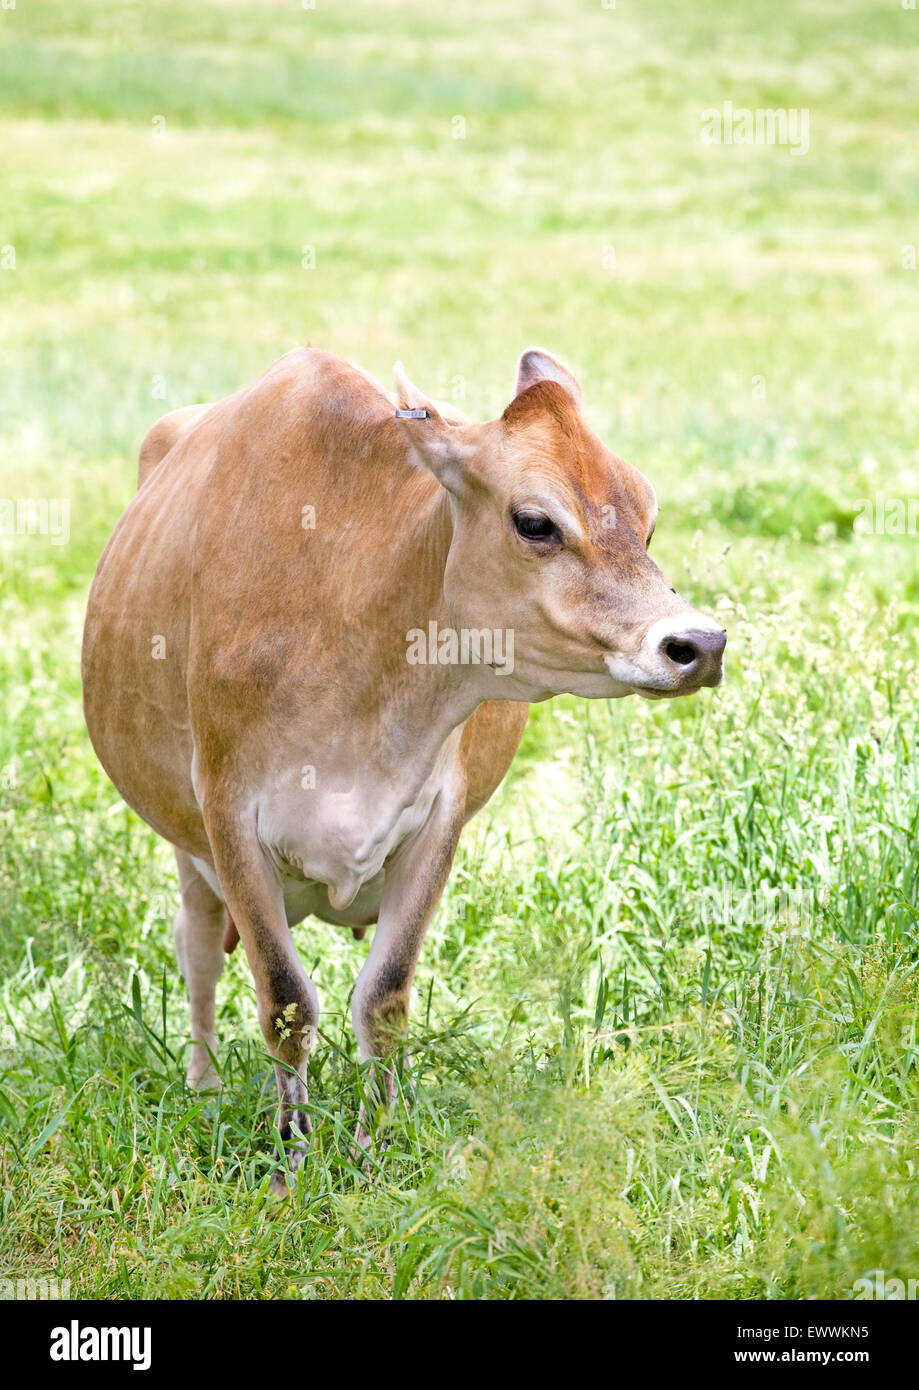 Jersey Cow Stock Photos & Jersey Cow Stock Images - Alamy